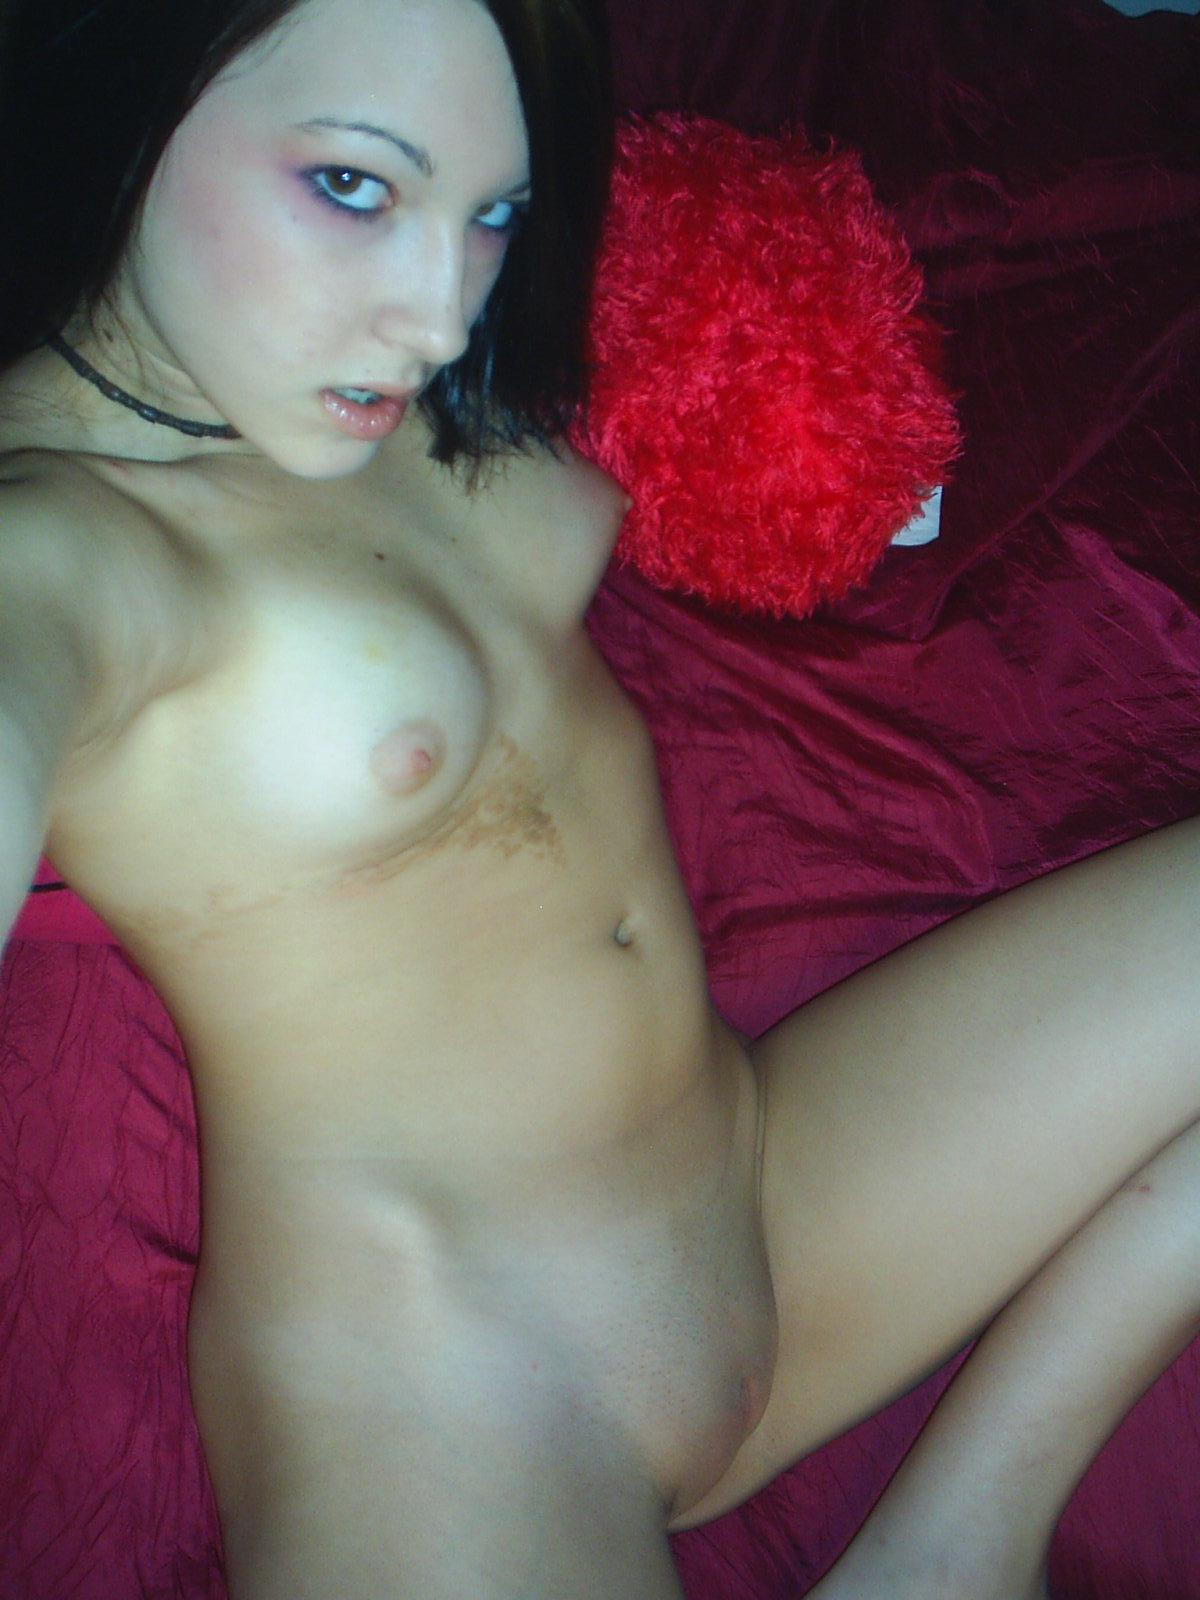 Agree, Sexy cell phone shot teens nude were